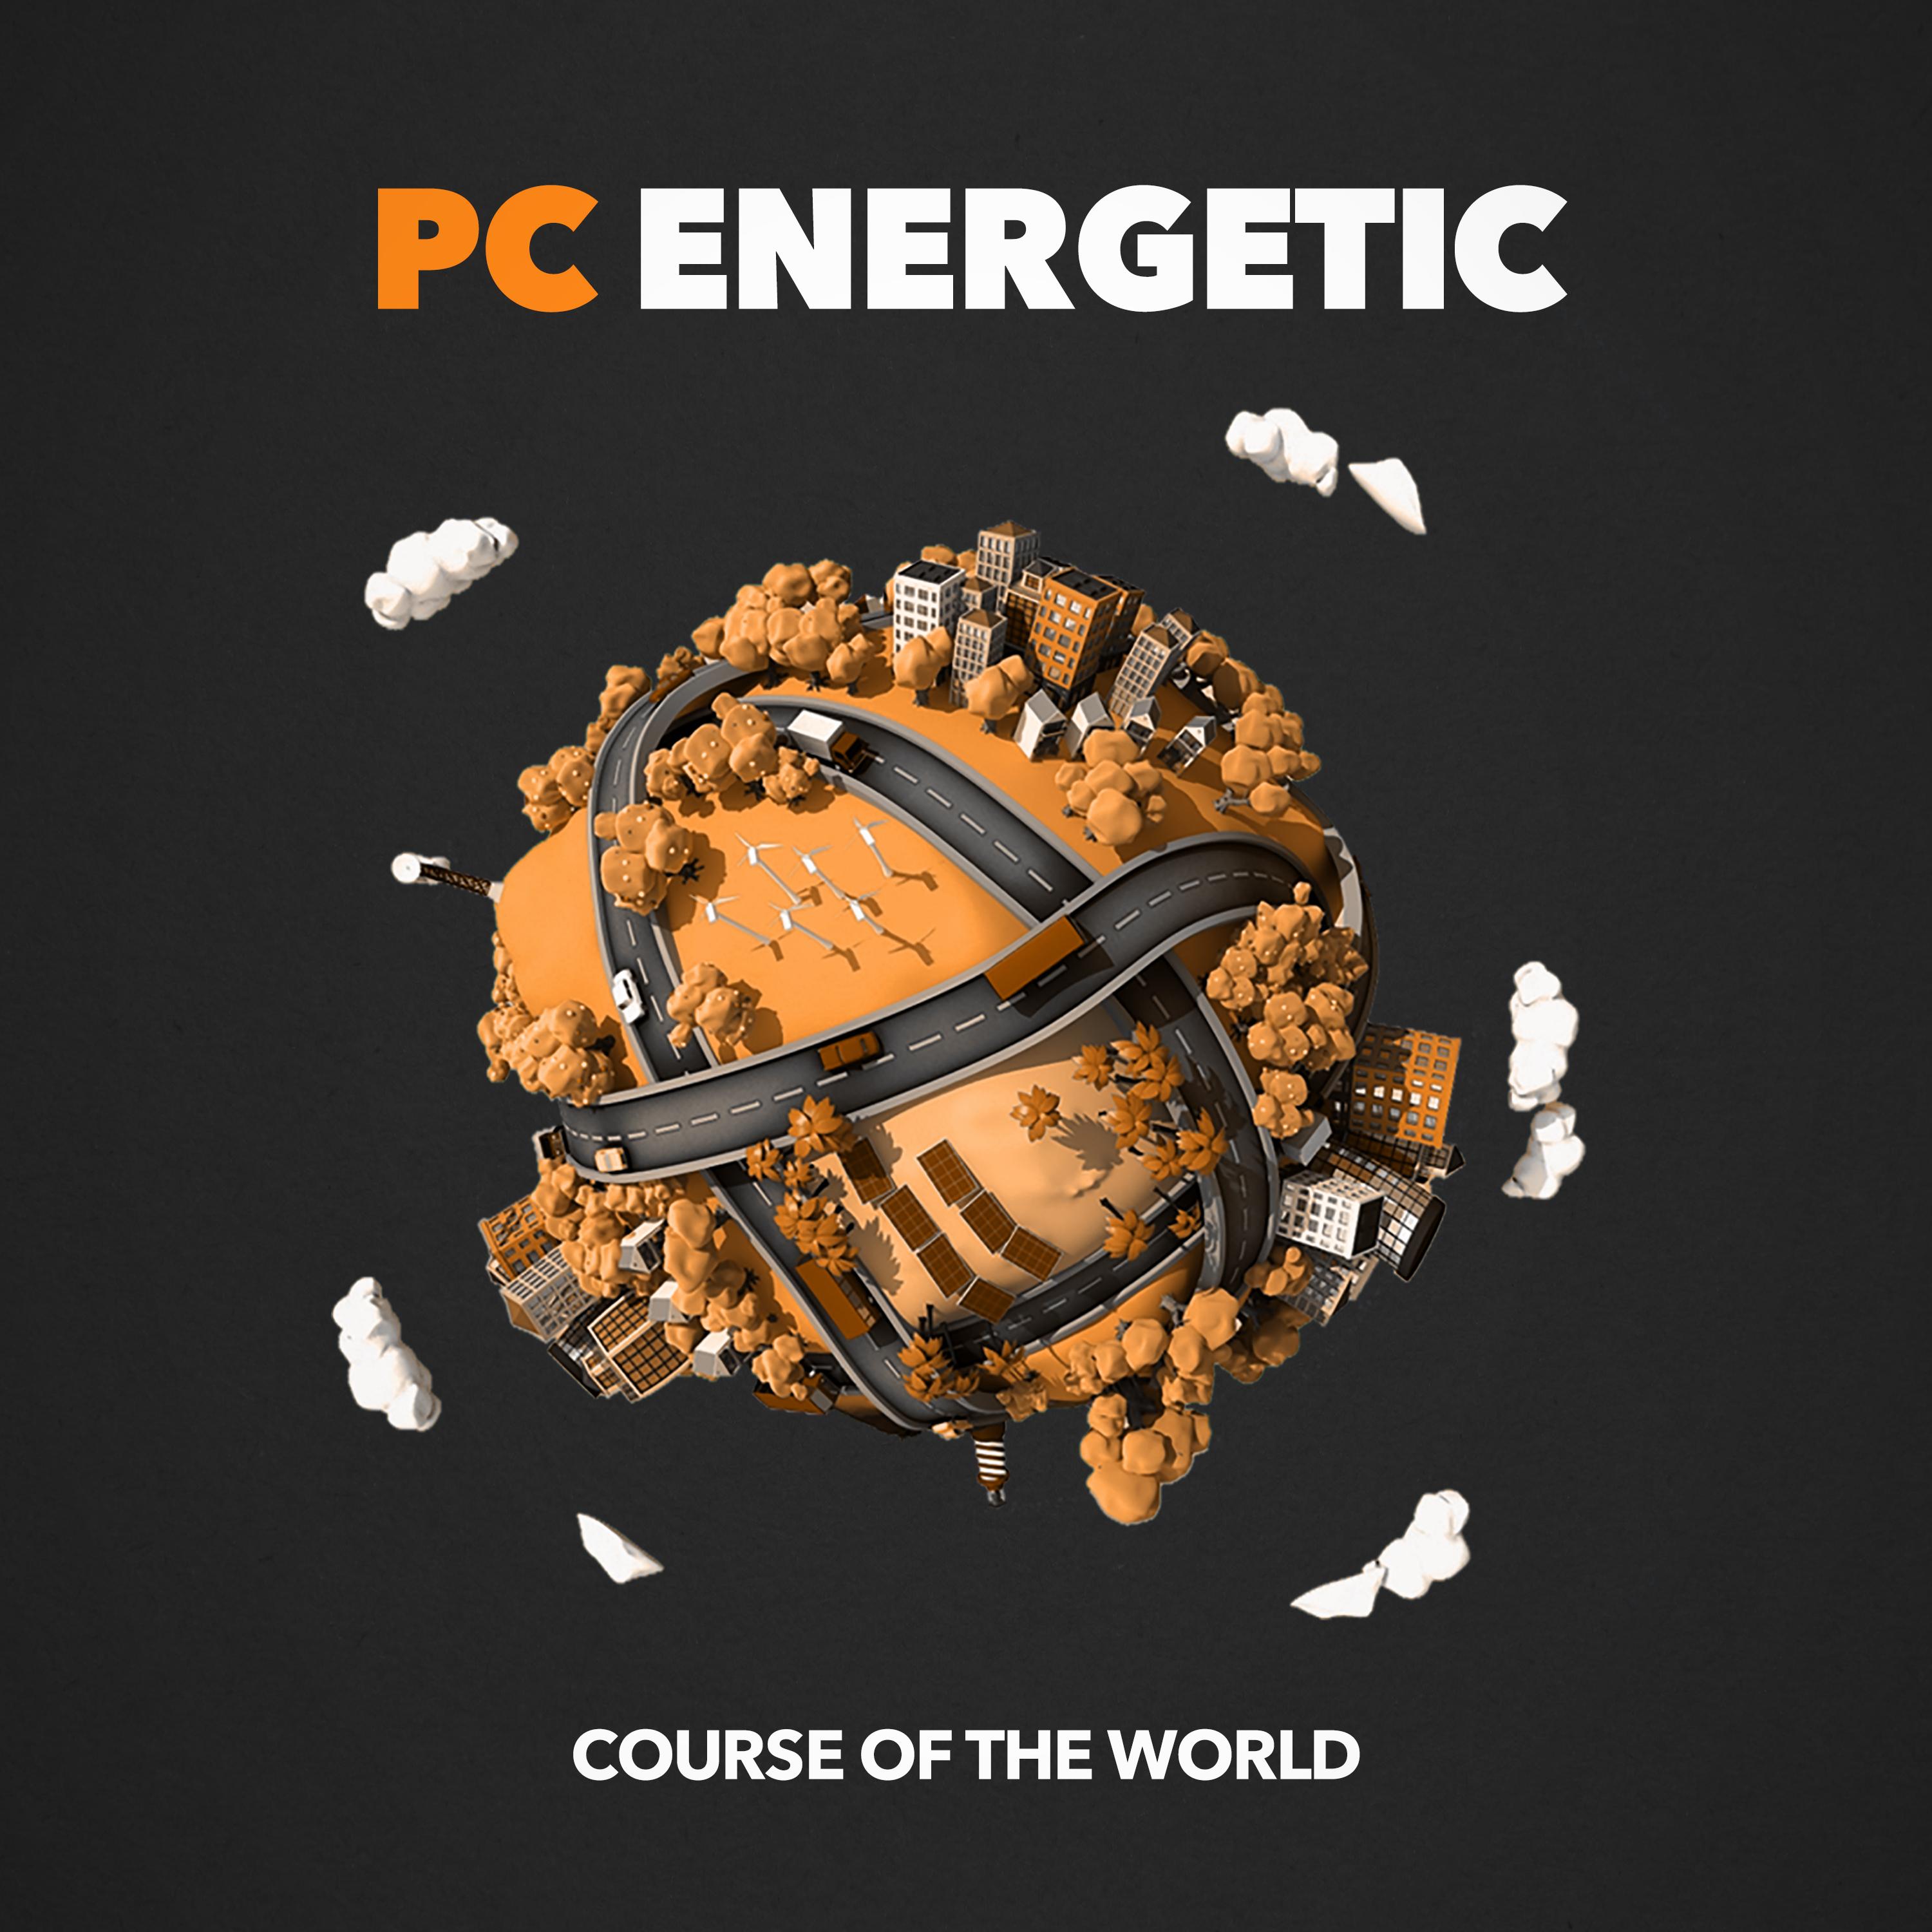 PC ENERGETIC